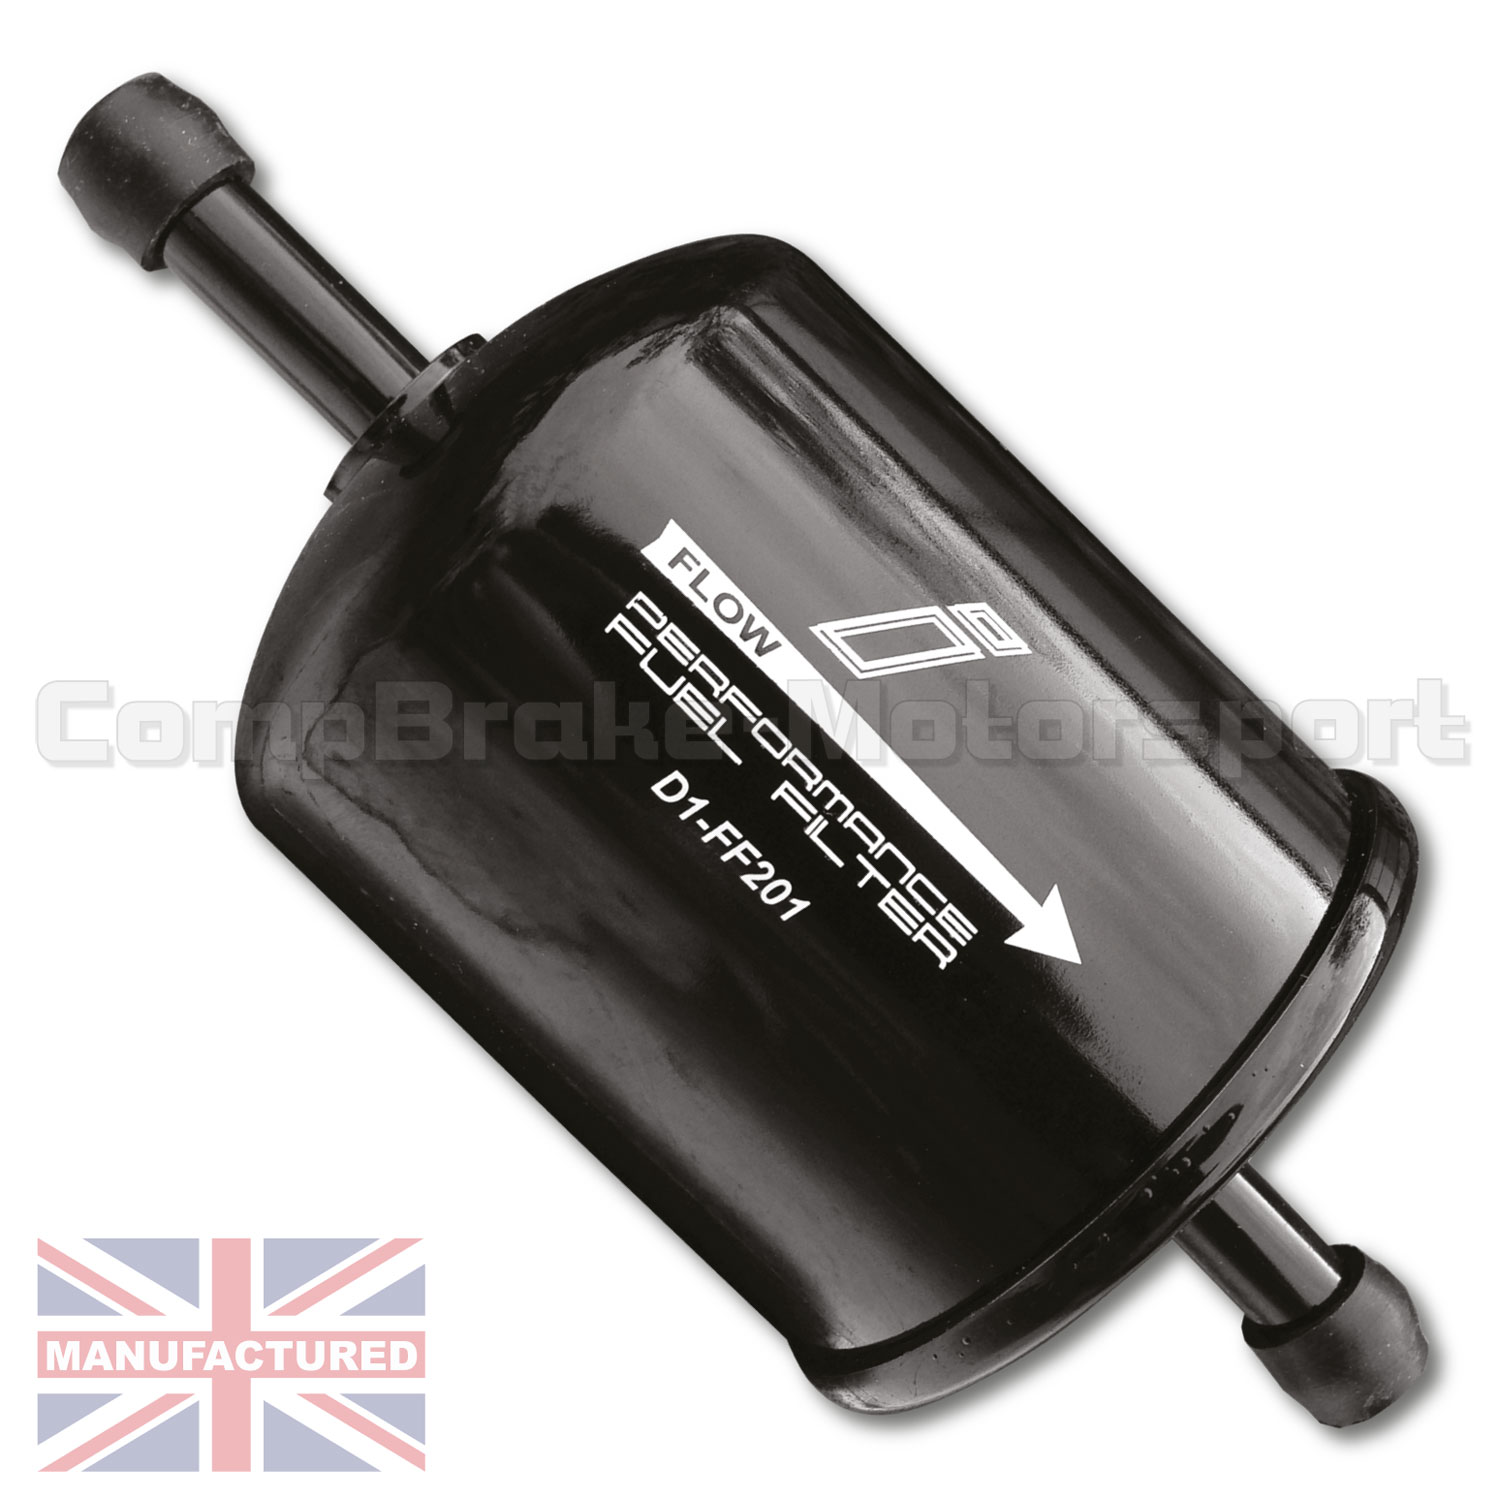 200sx 1989 300zx Fuel Filter Removal Quickview Filters